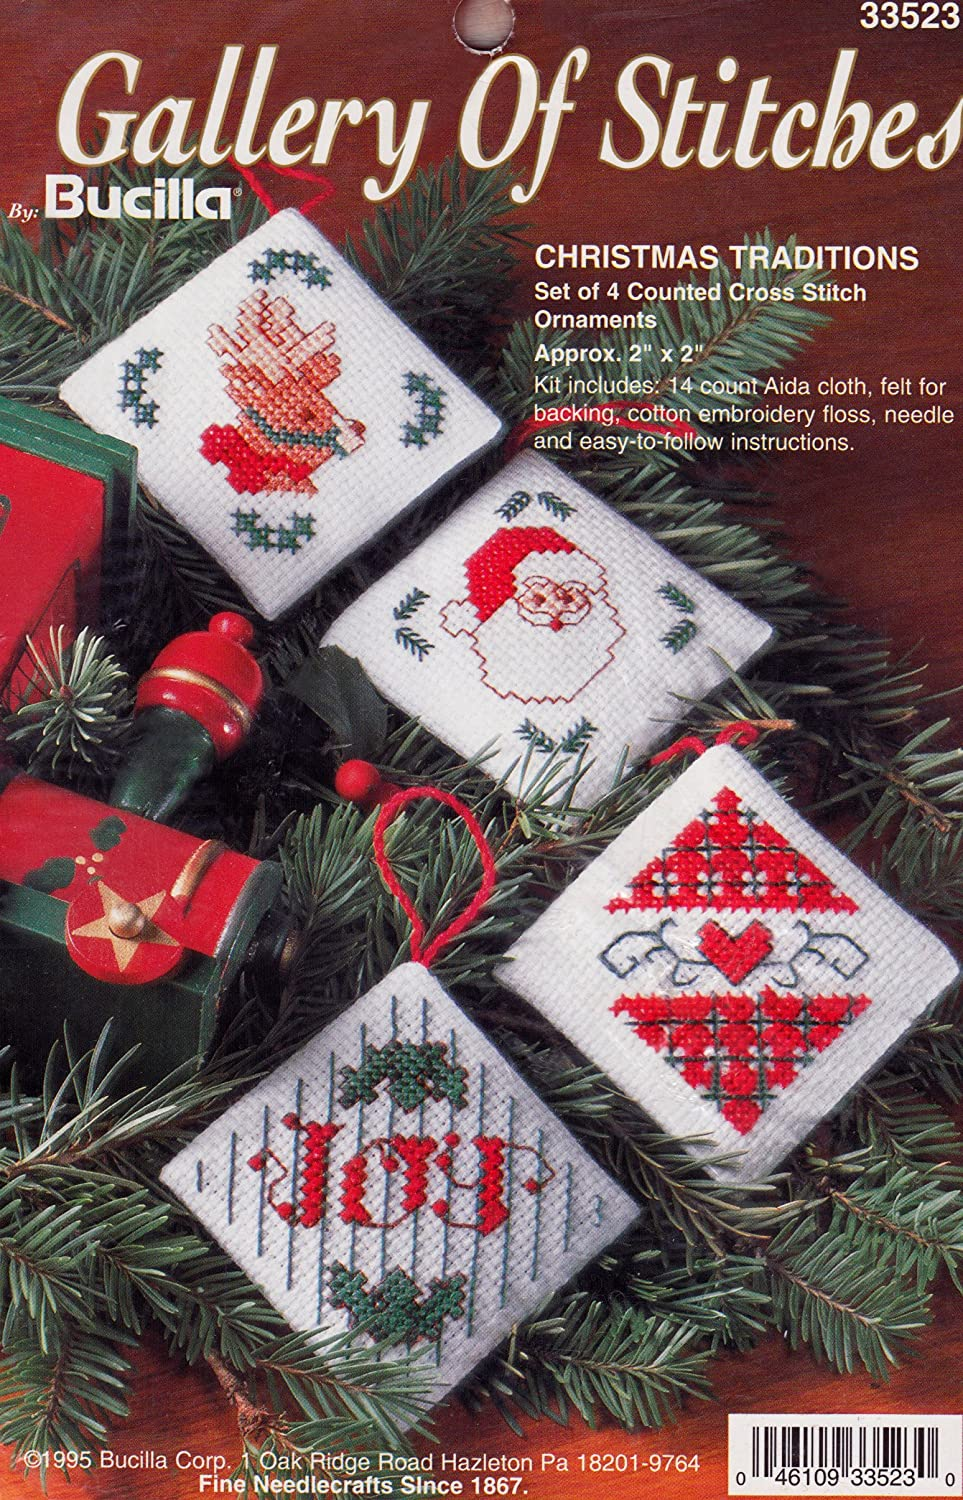 Bucilla Gallery of Stitches Christmas Traditions Cross Stitch Ornament Kit 33523